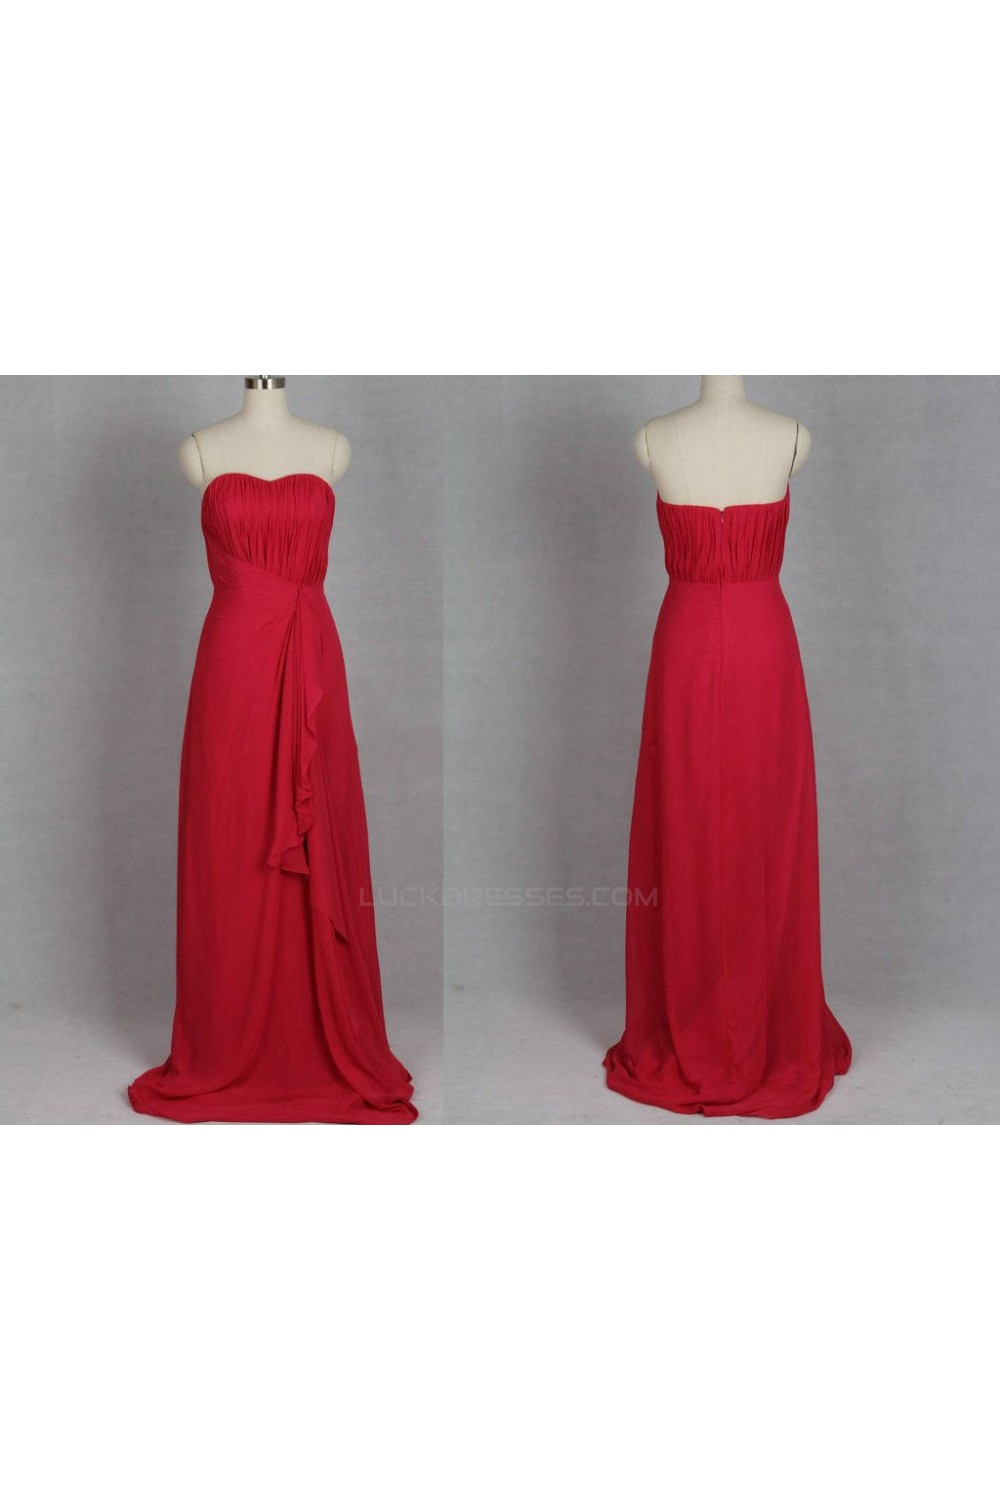 Line strapless long red chiffon bridesmaid dressesevening dresses a line strapless long red chiffon bridesmaid dressesevening dresses bd010506 ombrellifo Image collections